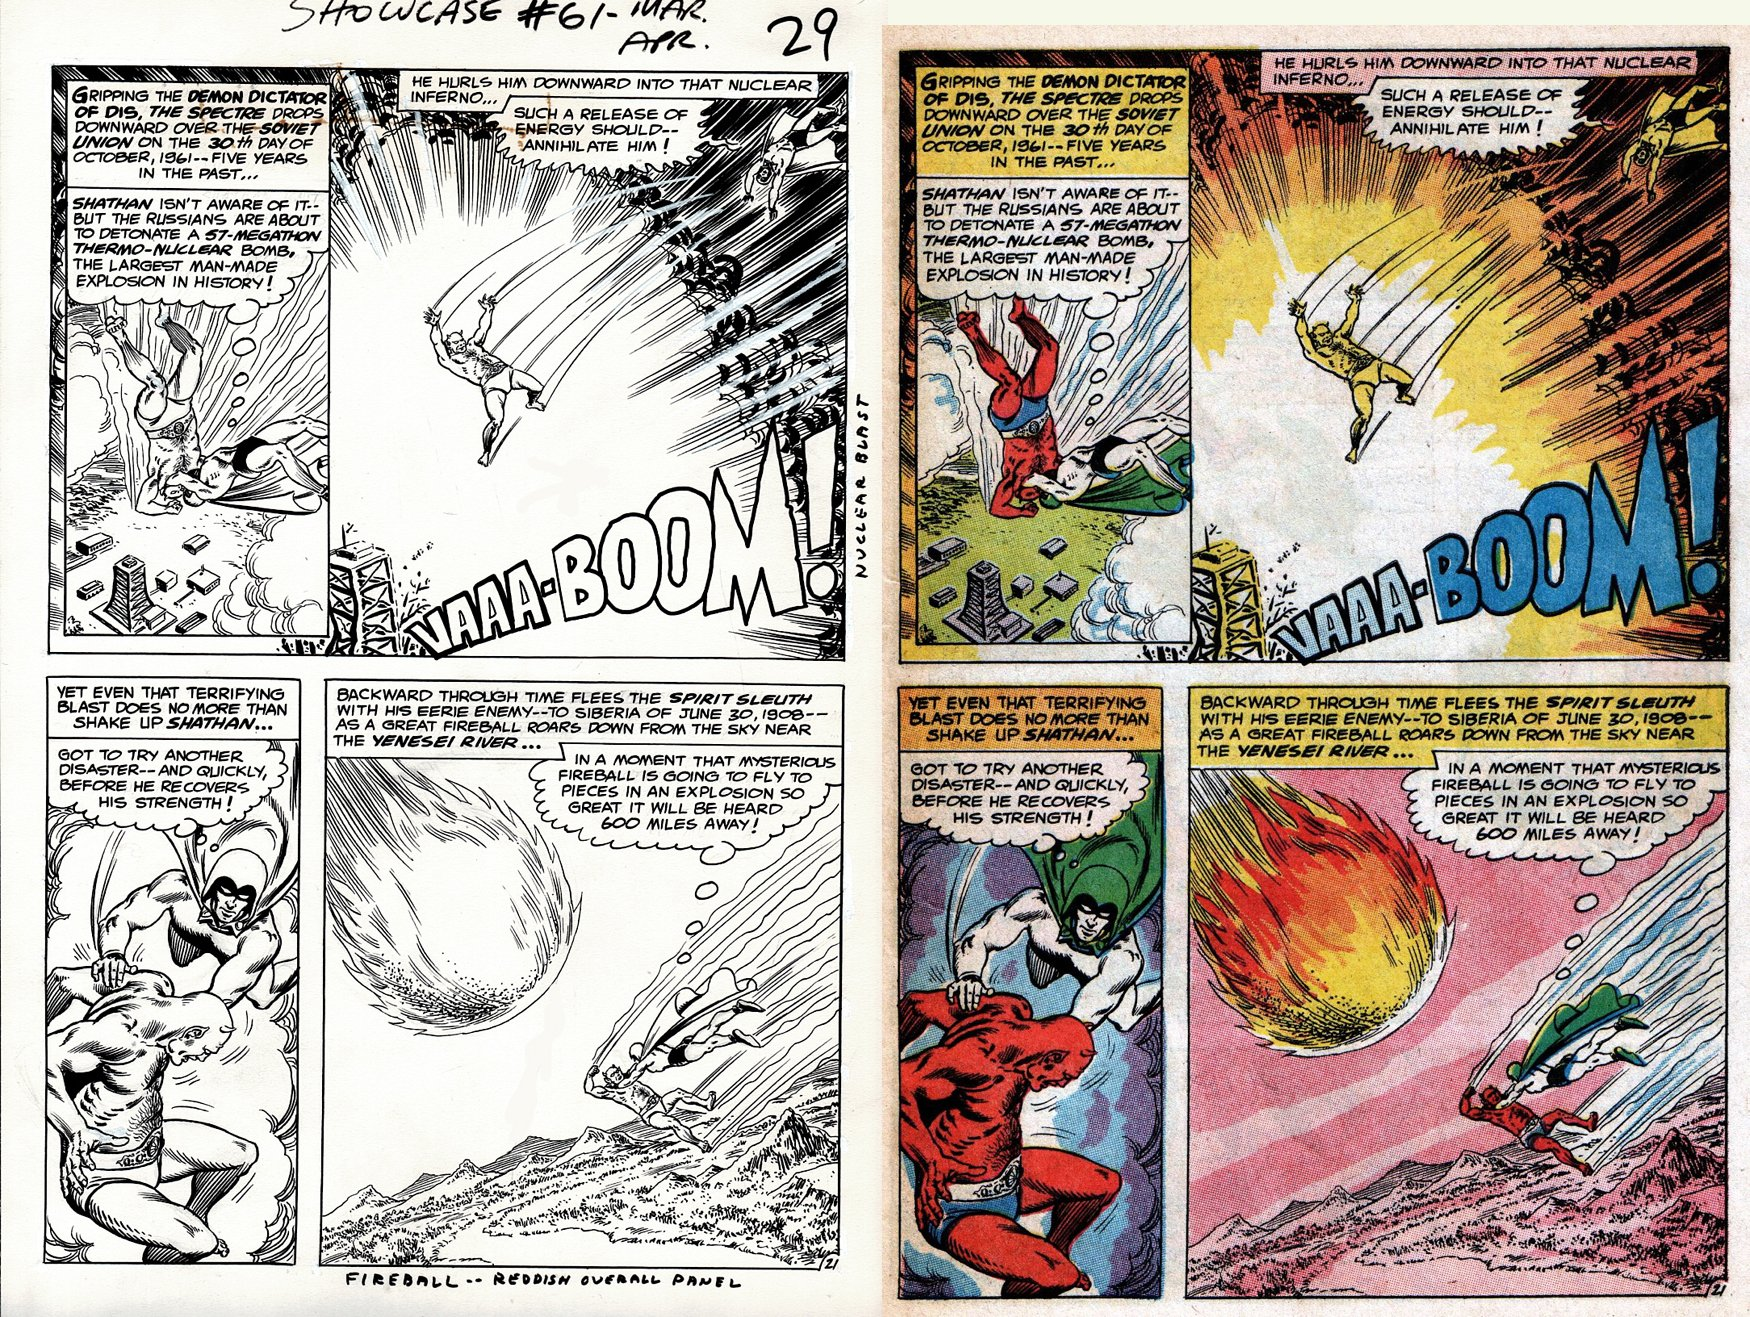 Showcase #61 p 21 (EARLIEST SILVER AGE SOLO SPECTRE BATTLE PG EVER OFFERED FOR PUBLIC SALE!) - 1965